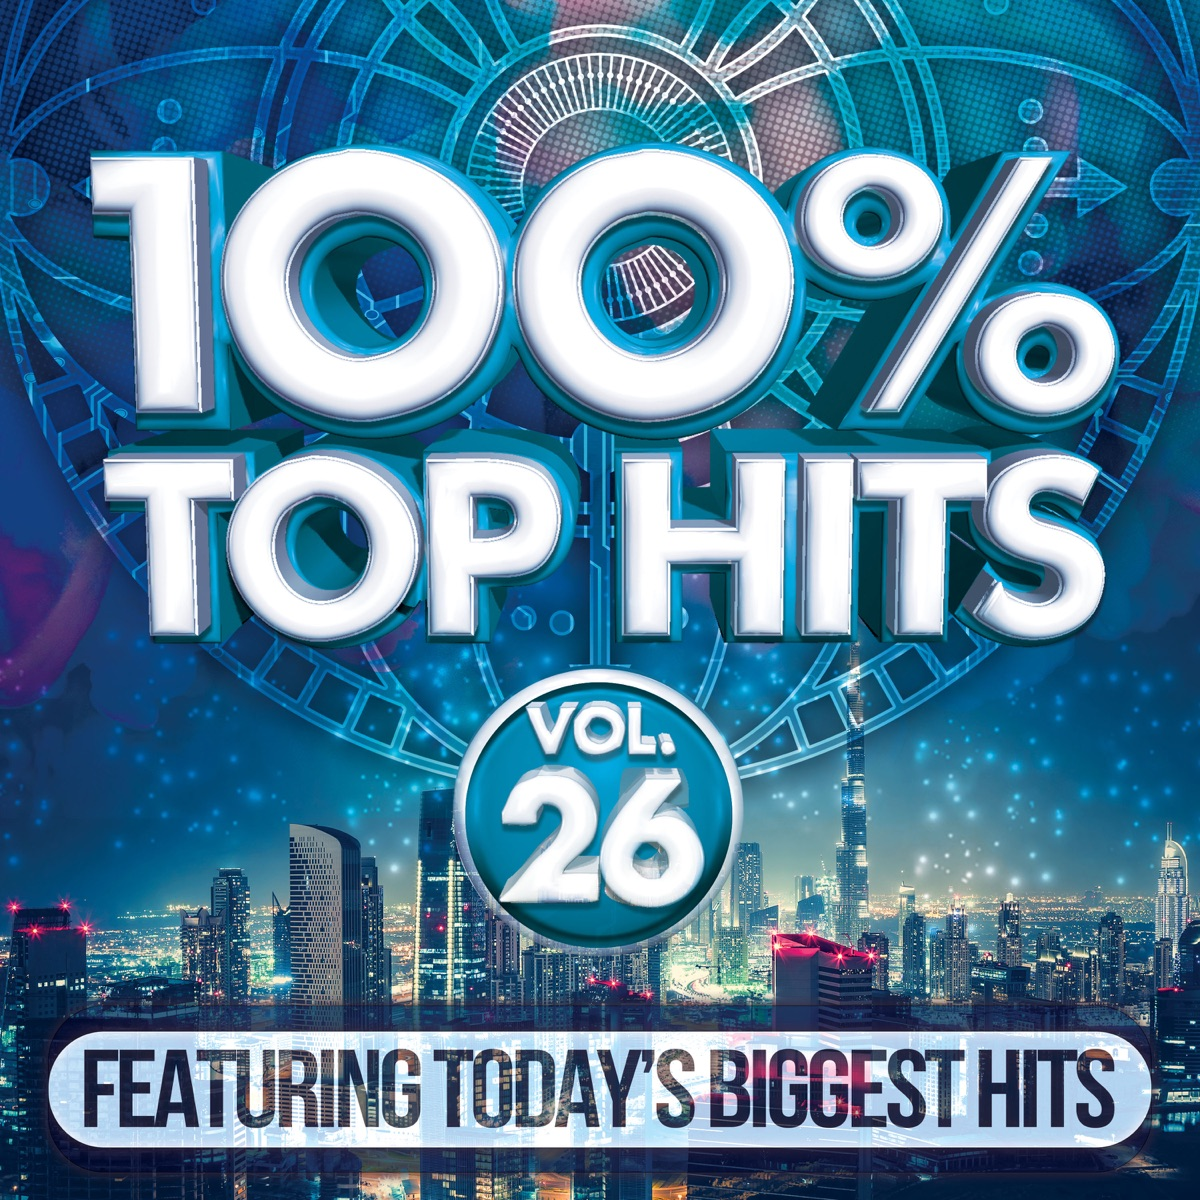 100 Top Hits Vol 26 Various Artists CD cover